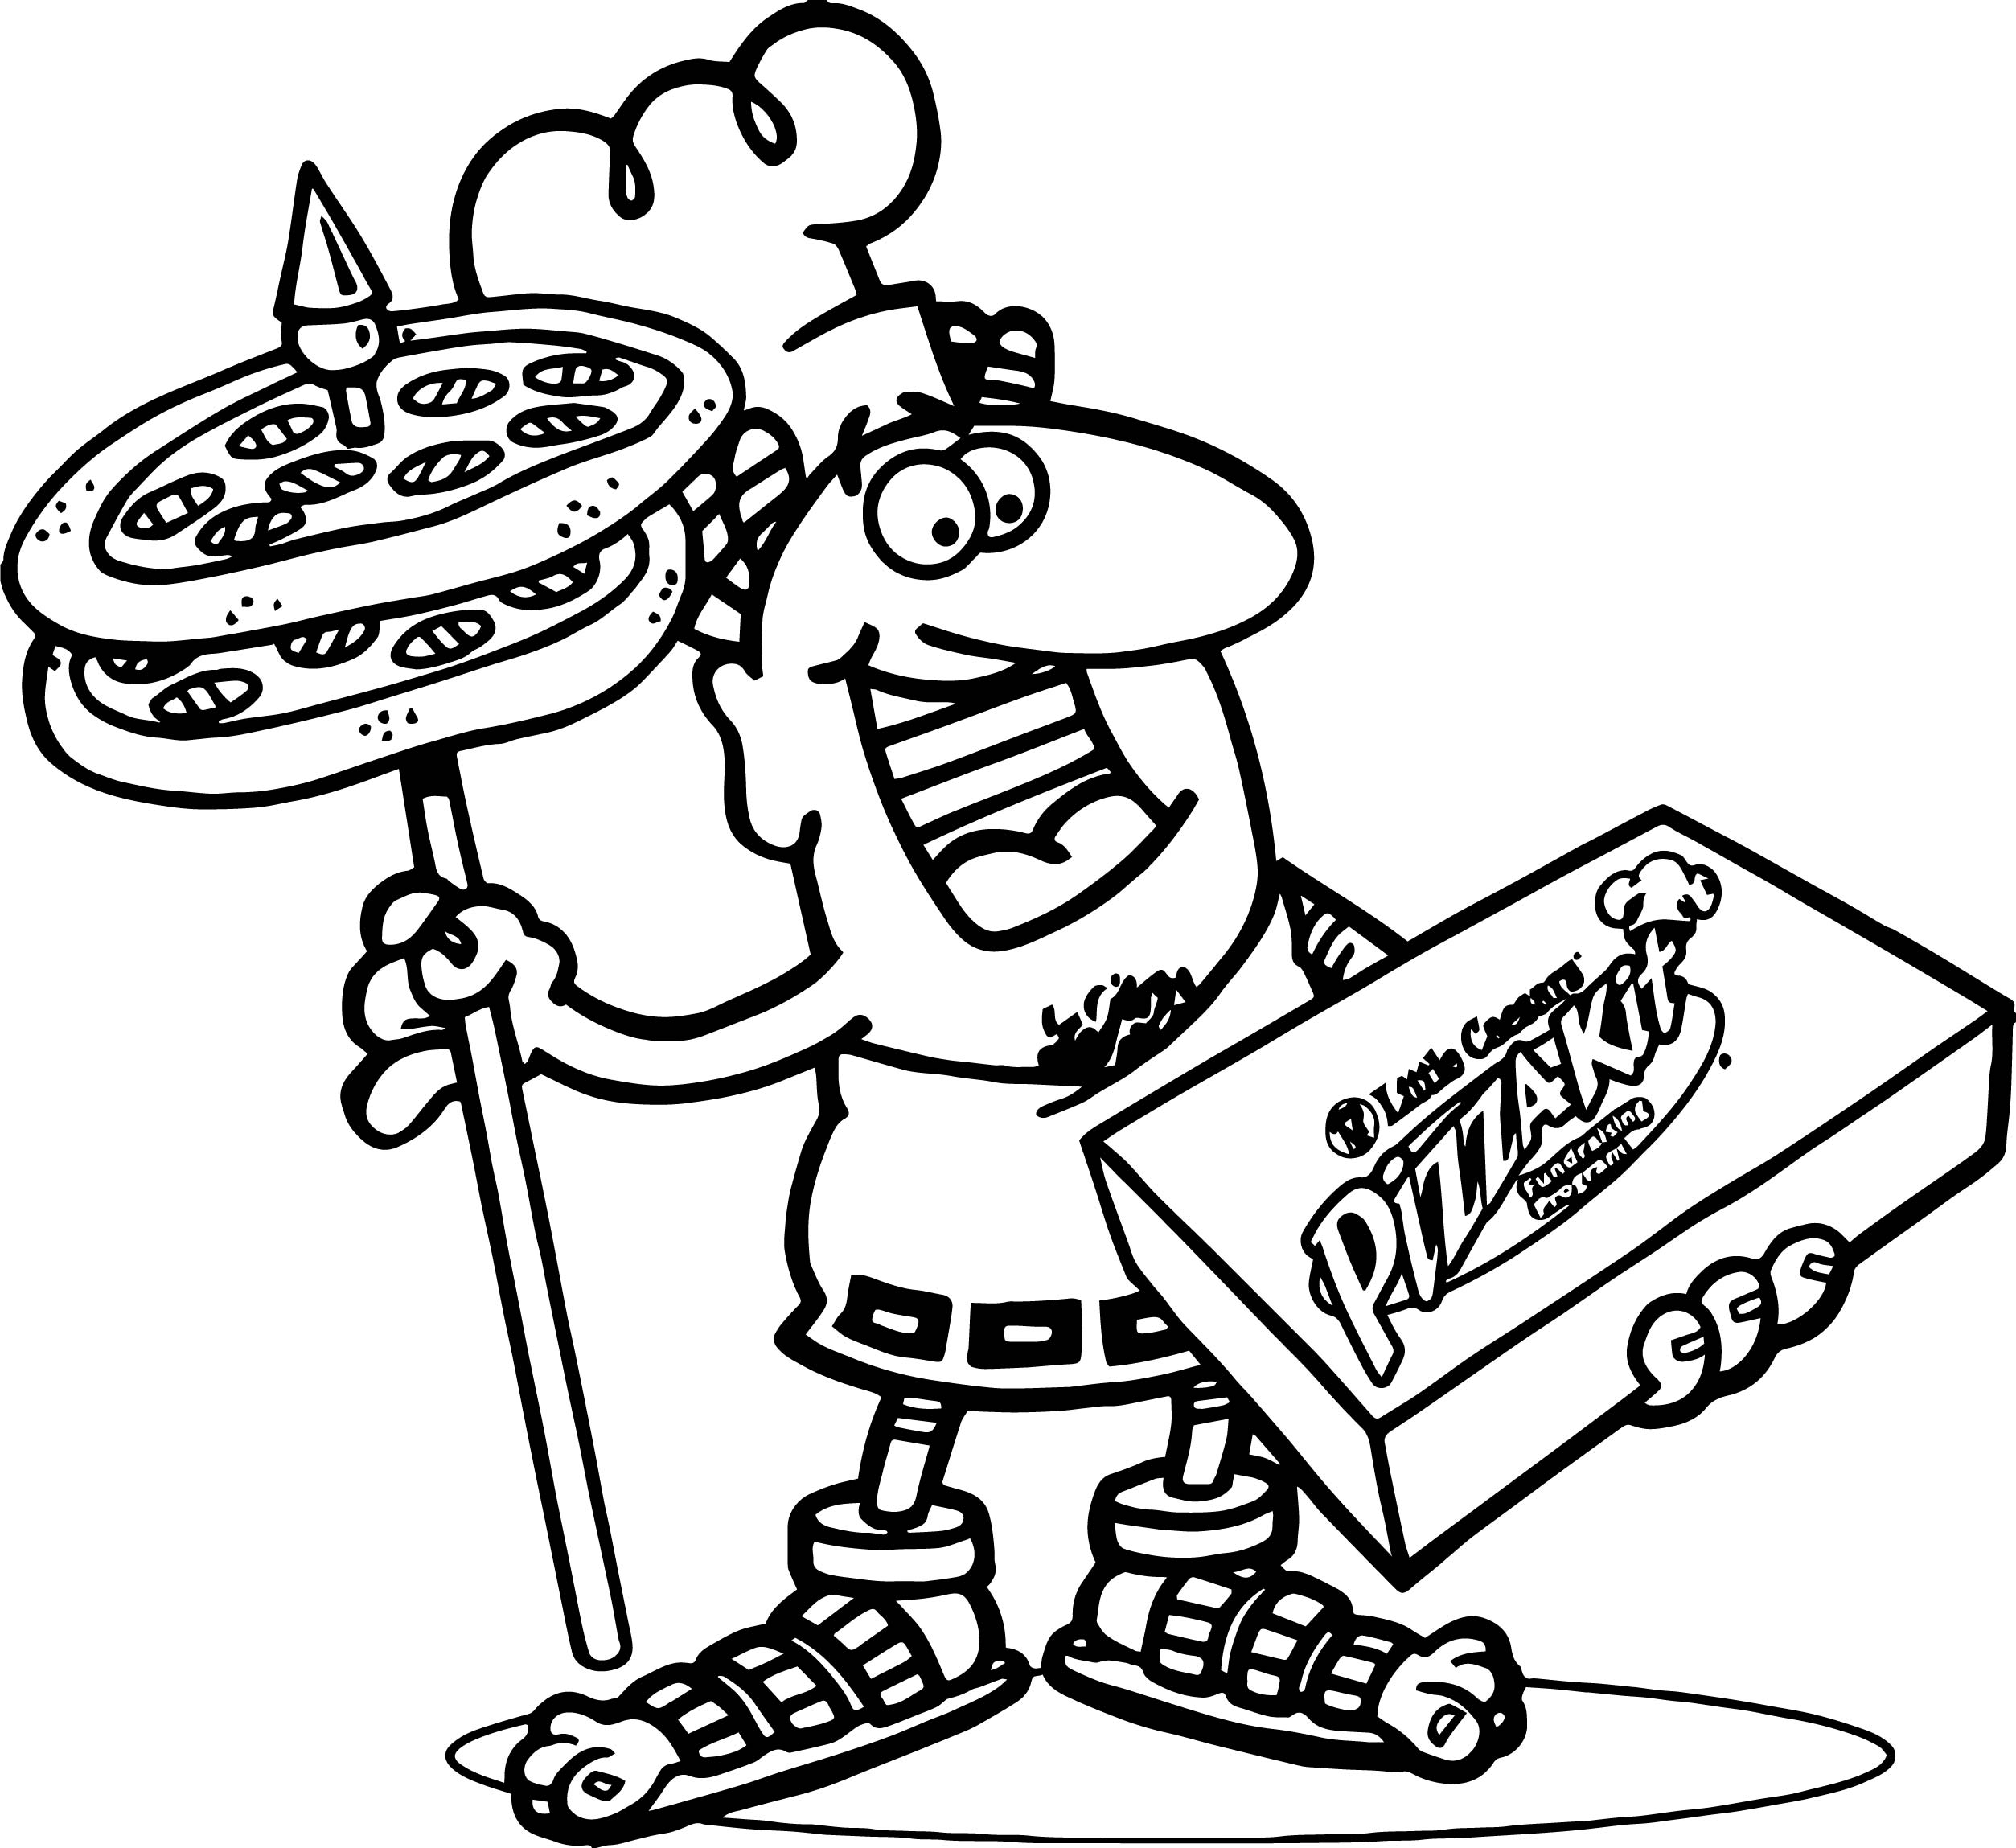 2507x2298 Growth Little Caesars Coloring Pages Pizza Page Wecoloringpage